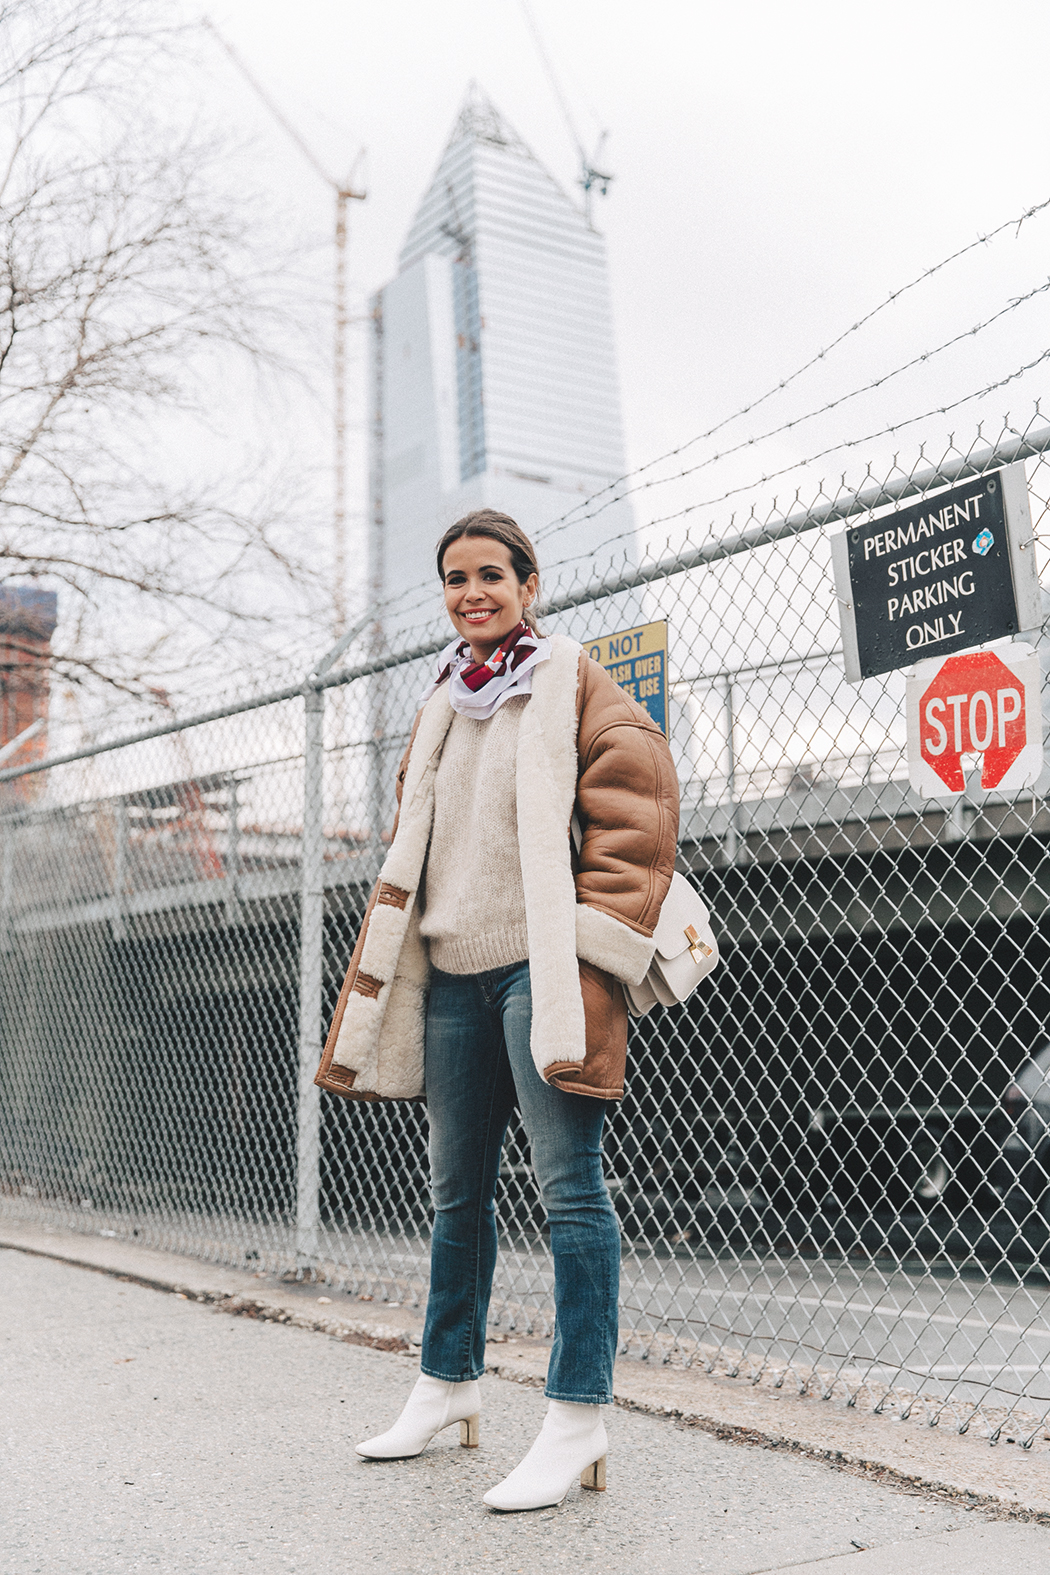 Collage_Vintage-Vintage_Coat-Jeans-Mother_Denim-Vintage_Scarf-White_Boots-Outfit-NYFW-Street_Style-Celine_Box-62